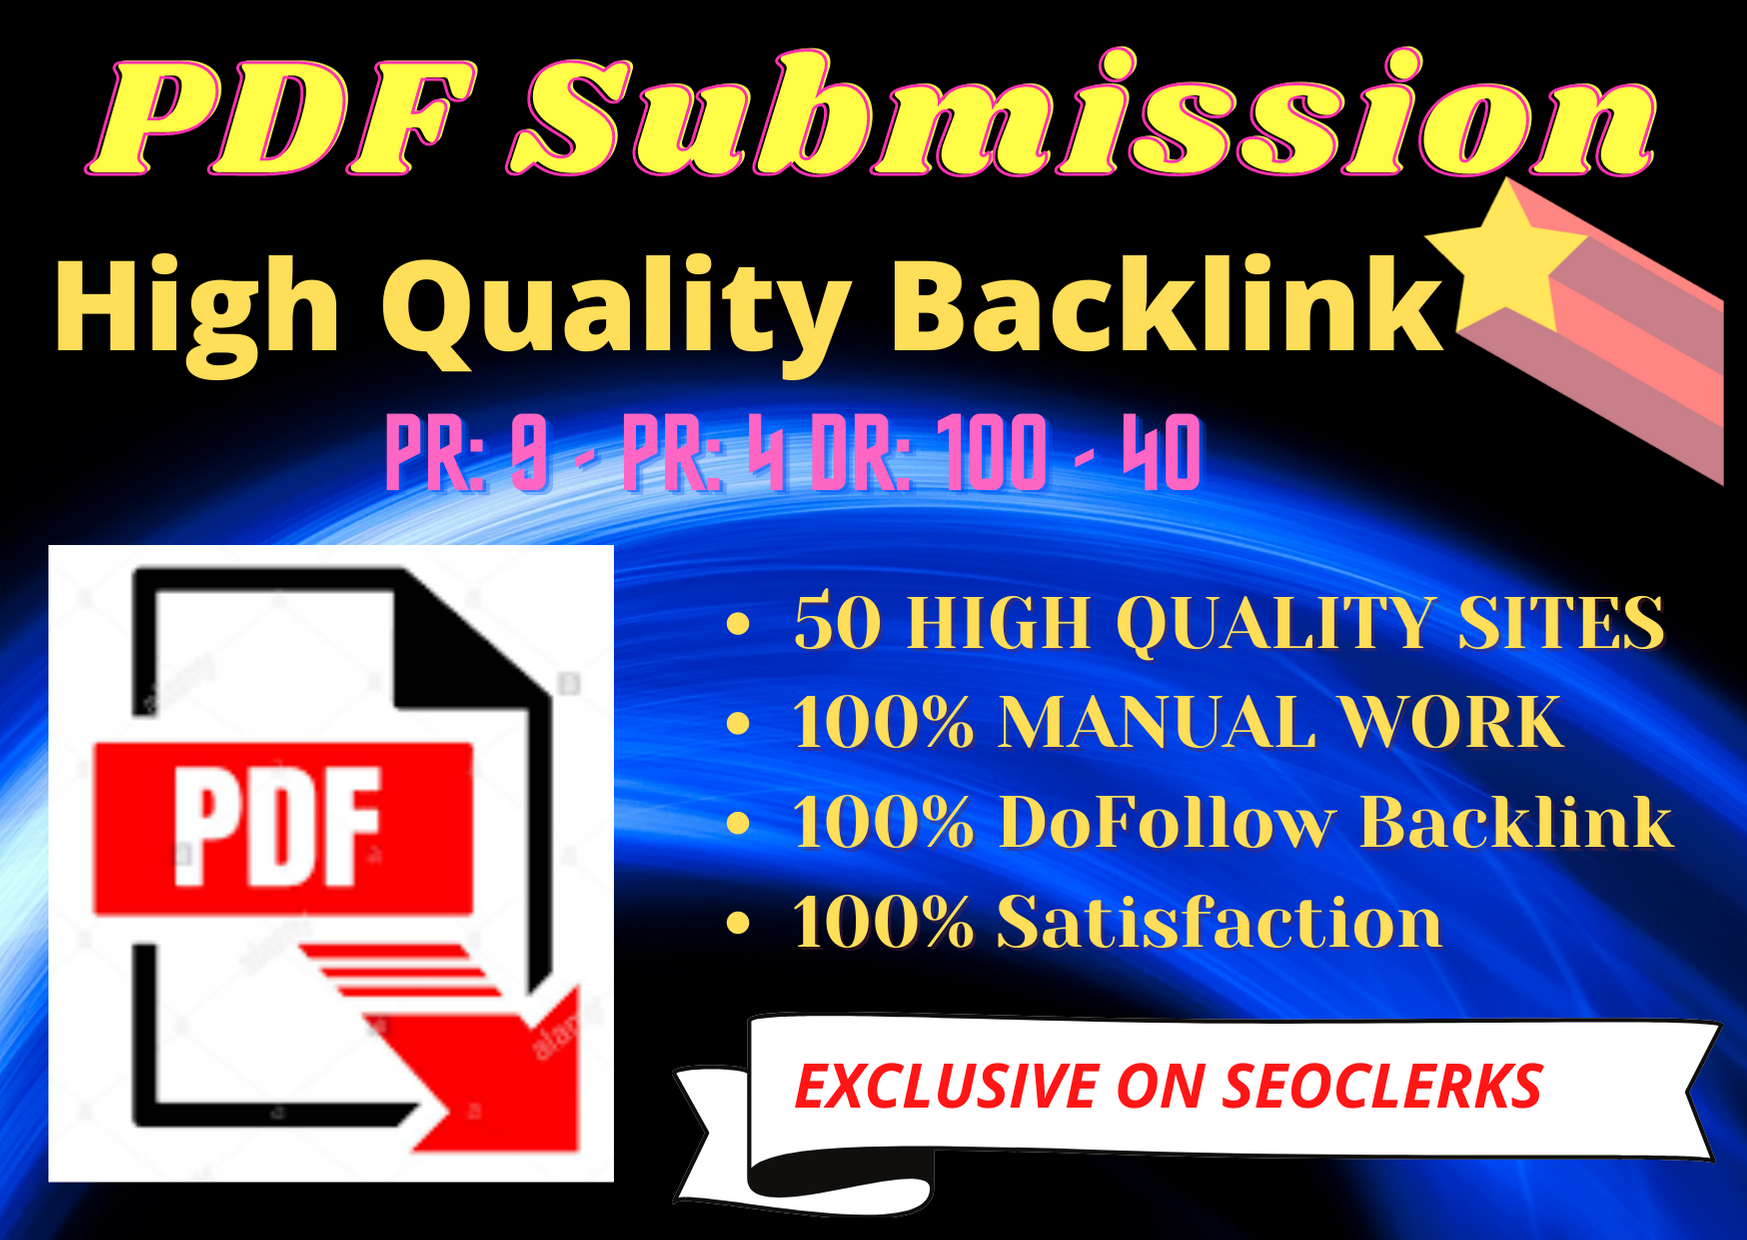 I Will do Best quality30 PDF submission High Quality Backlink